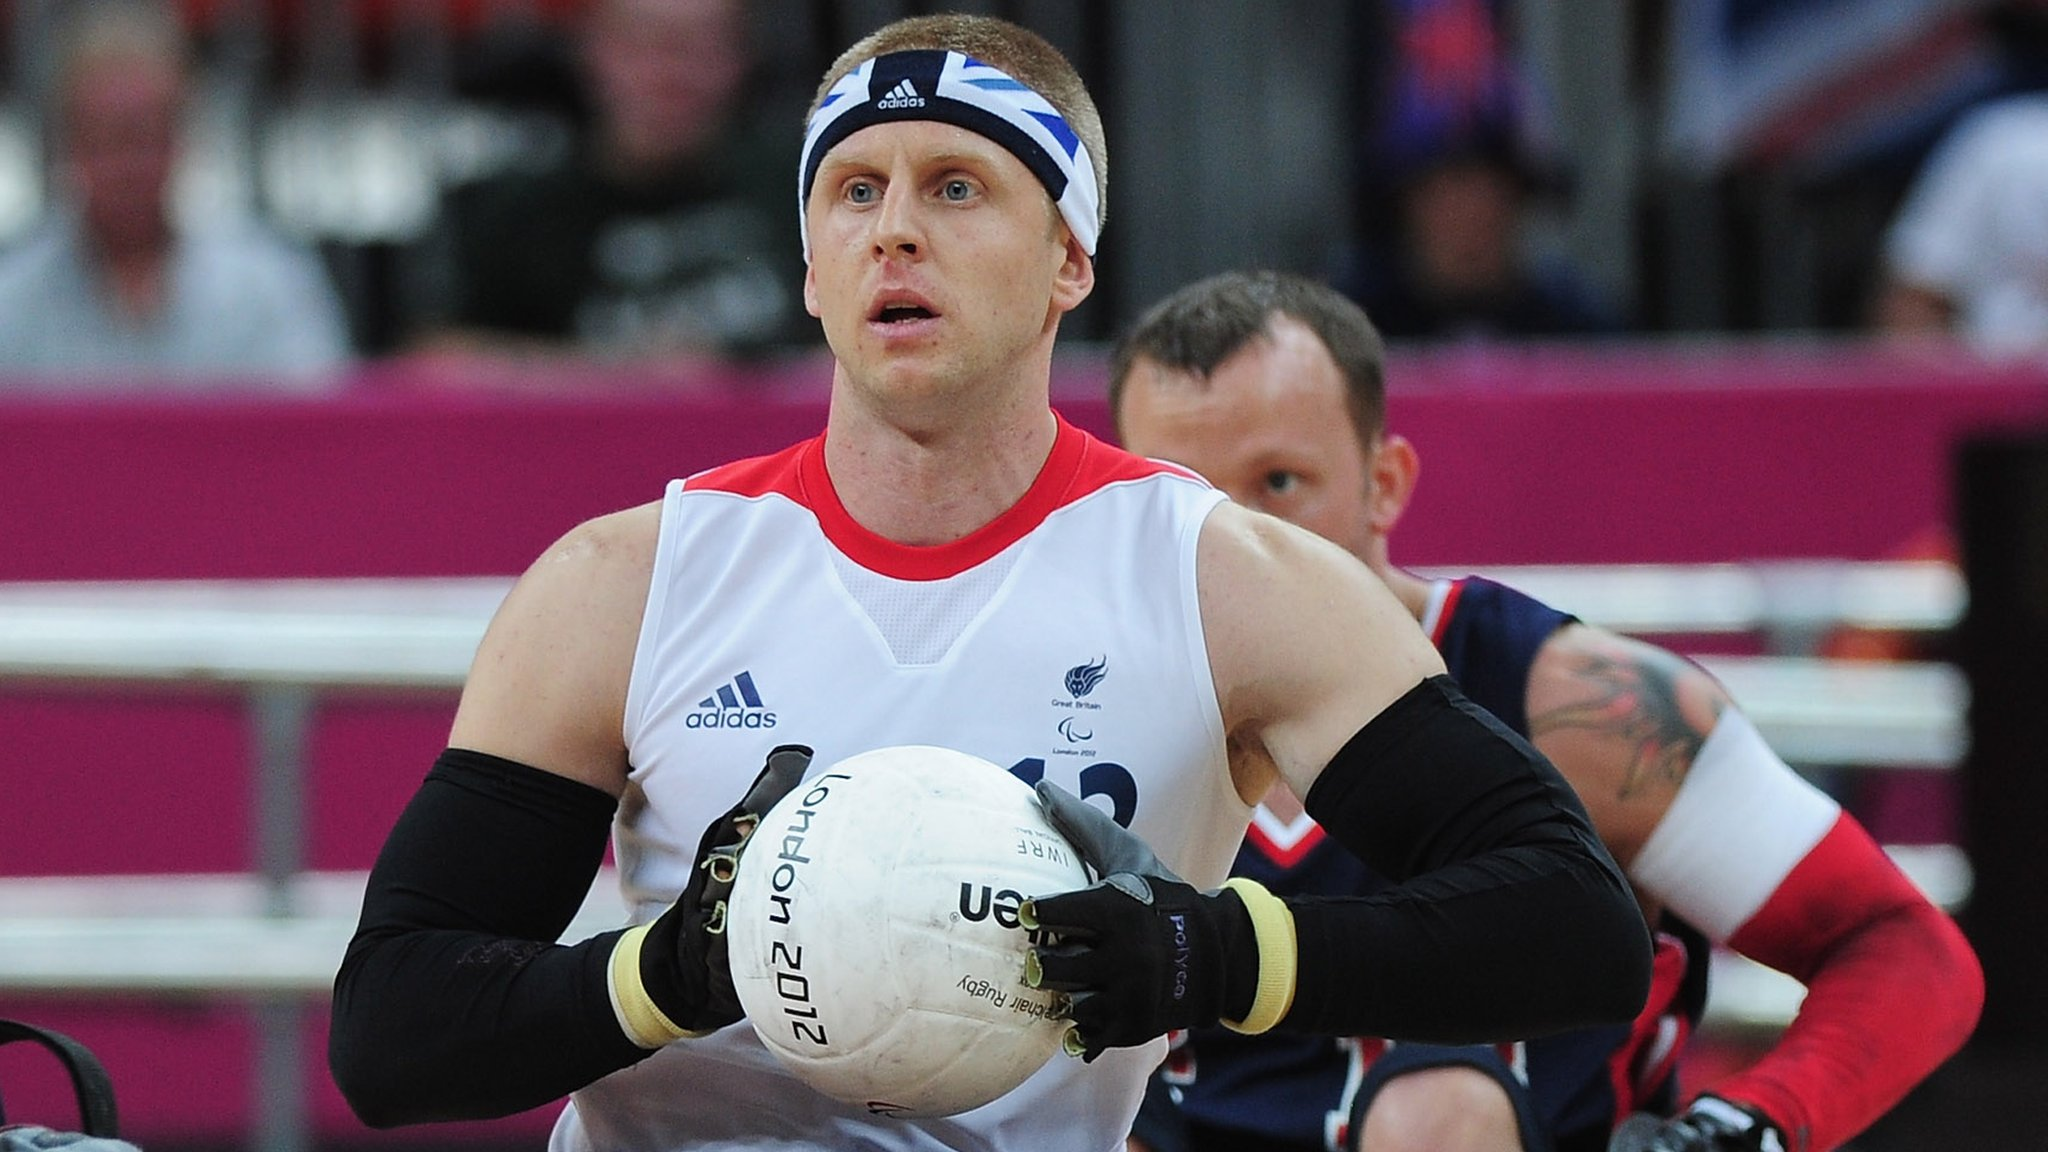 Aaron Phipps: GB wheelchair rugby player comes out of retirement in Tokyo 2020 bid